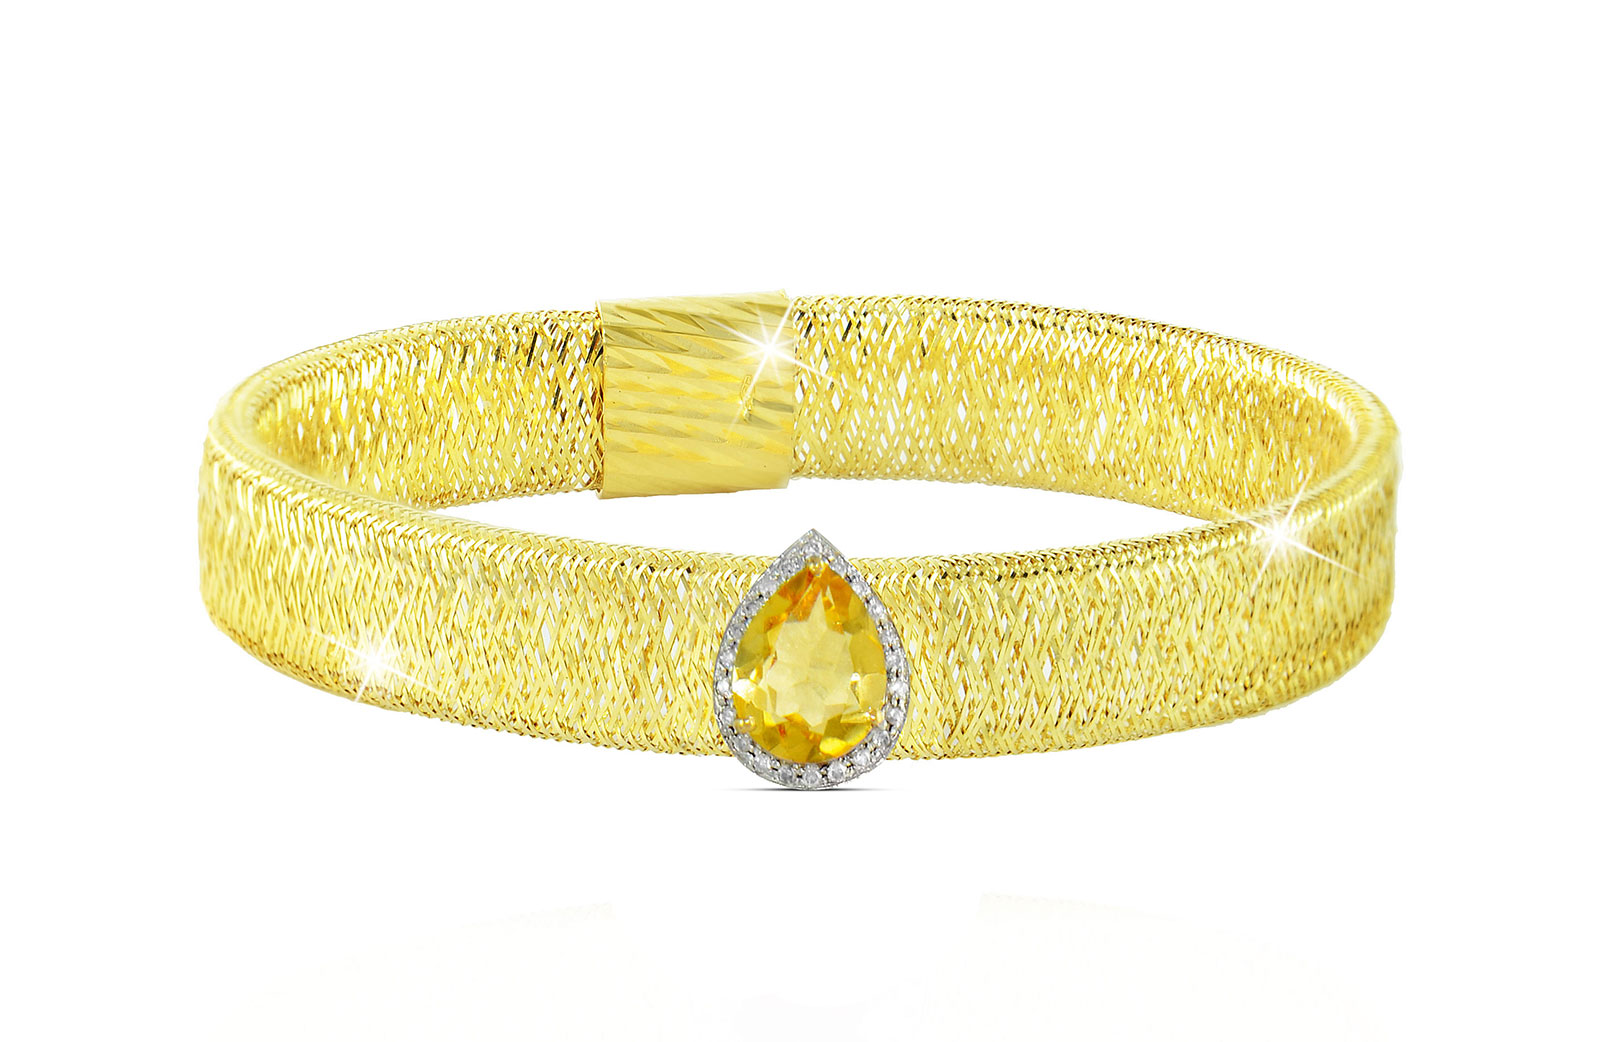 Vera Perla 18K Gold 0.12ct Diamonds, Citrine Mesh Bracelet